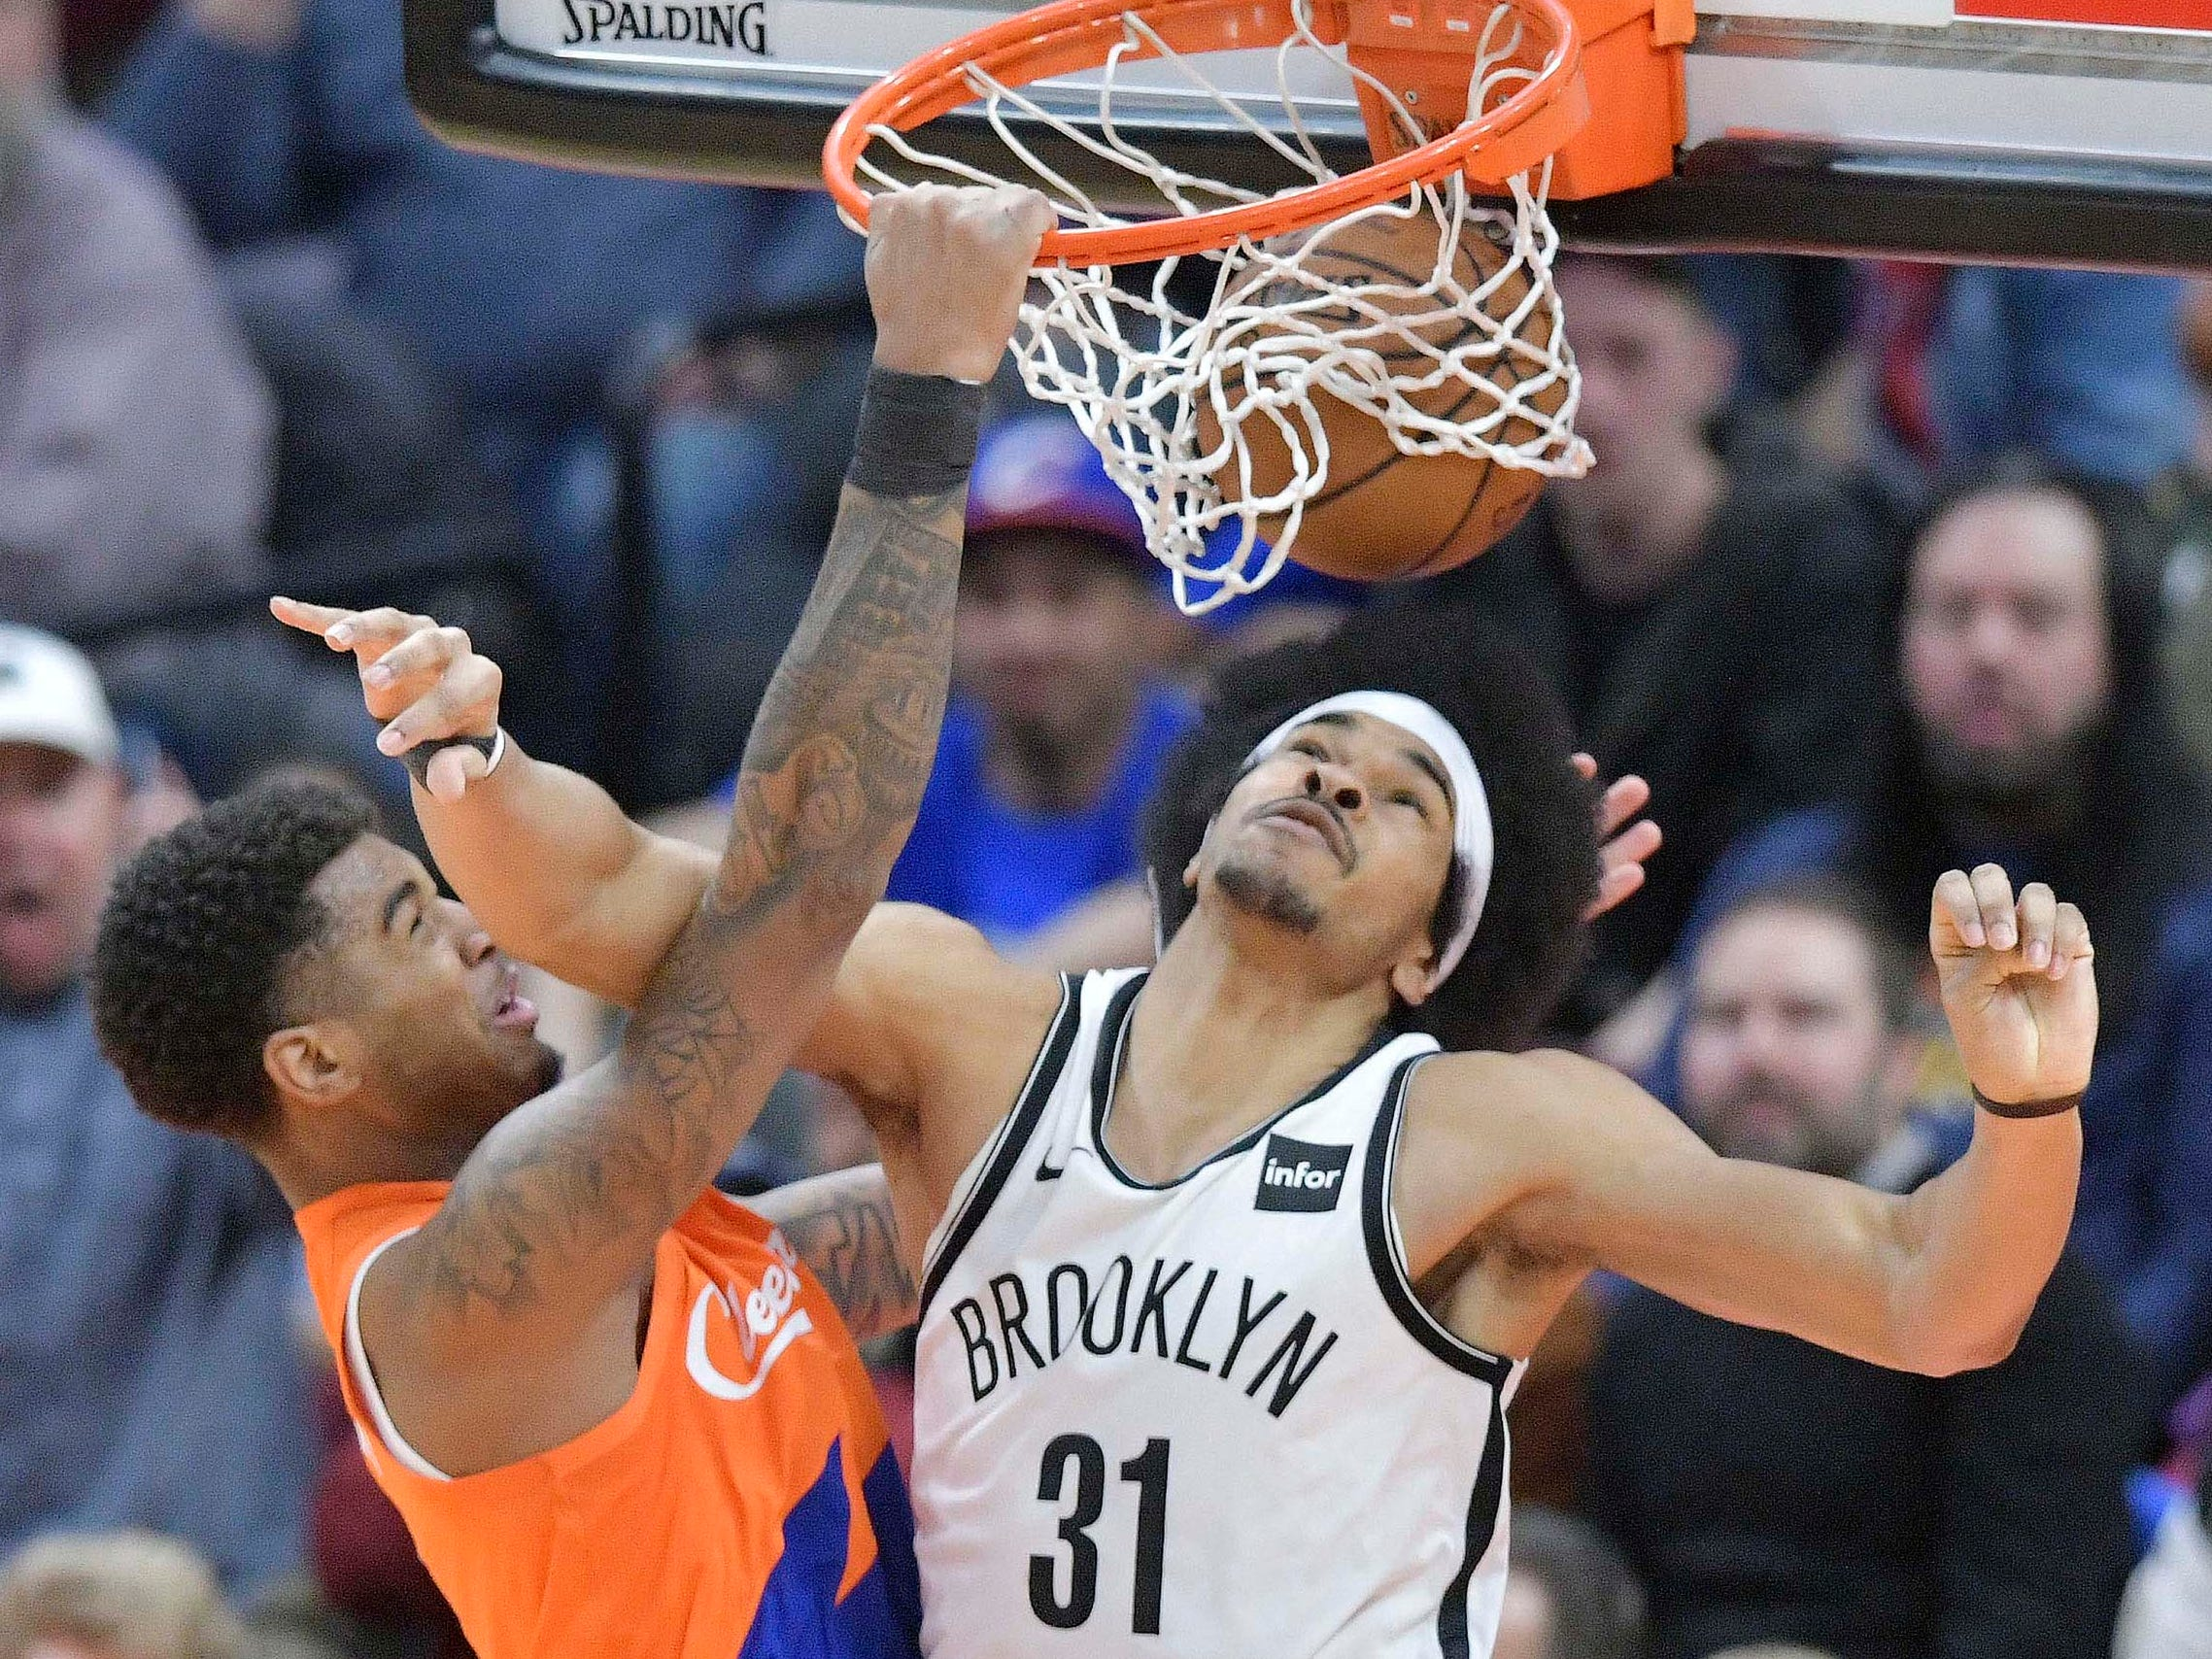 Feb. 13: Cavaliers forward Marquese Chriss (3) finishes the thunderous one-handed slam over Nets center Jarrett Allen (31) in Cleveland.